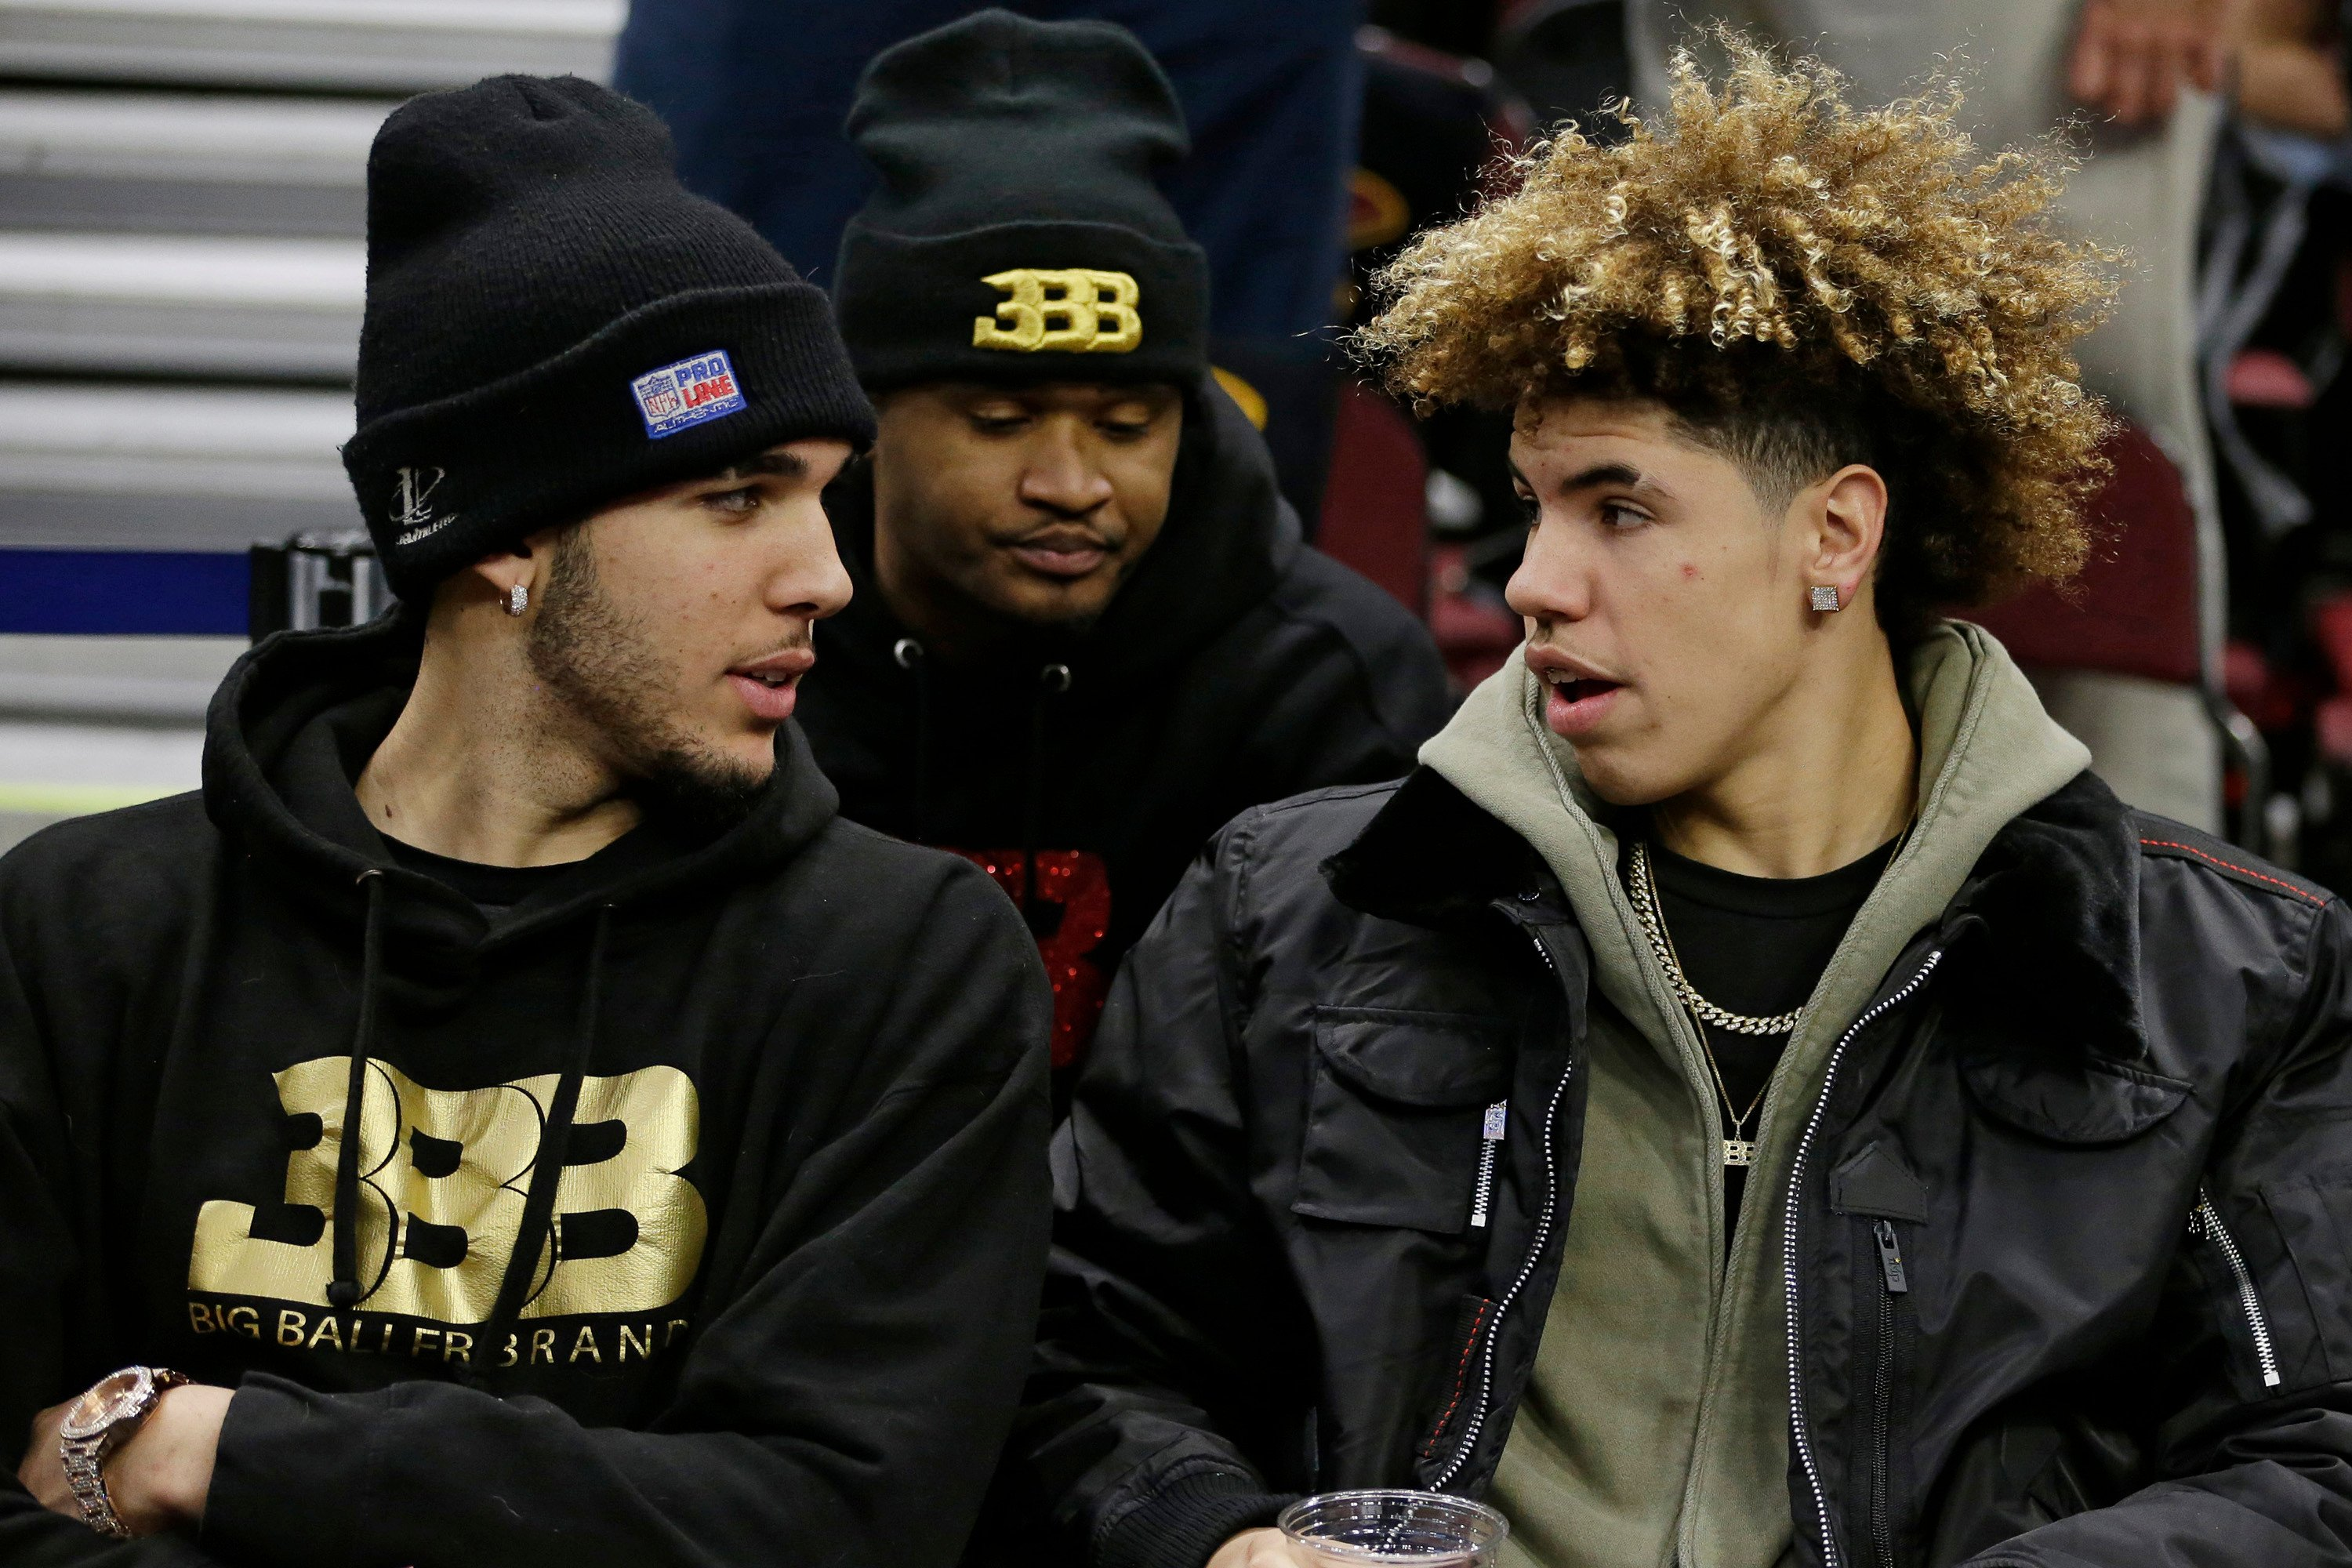 The ambitious Lithuania playing plan for LiAngelo, LaMelo Ball